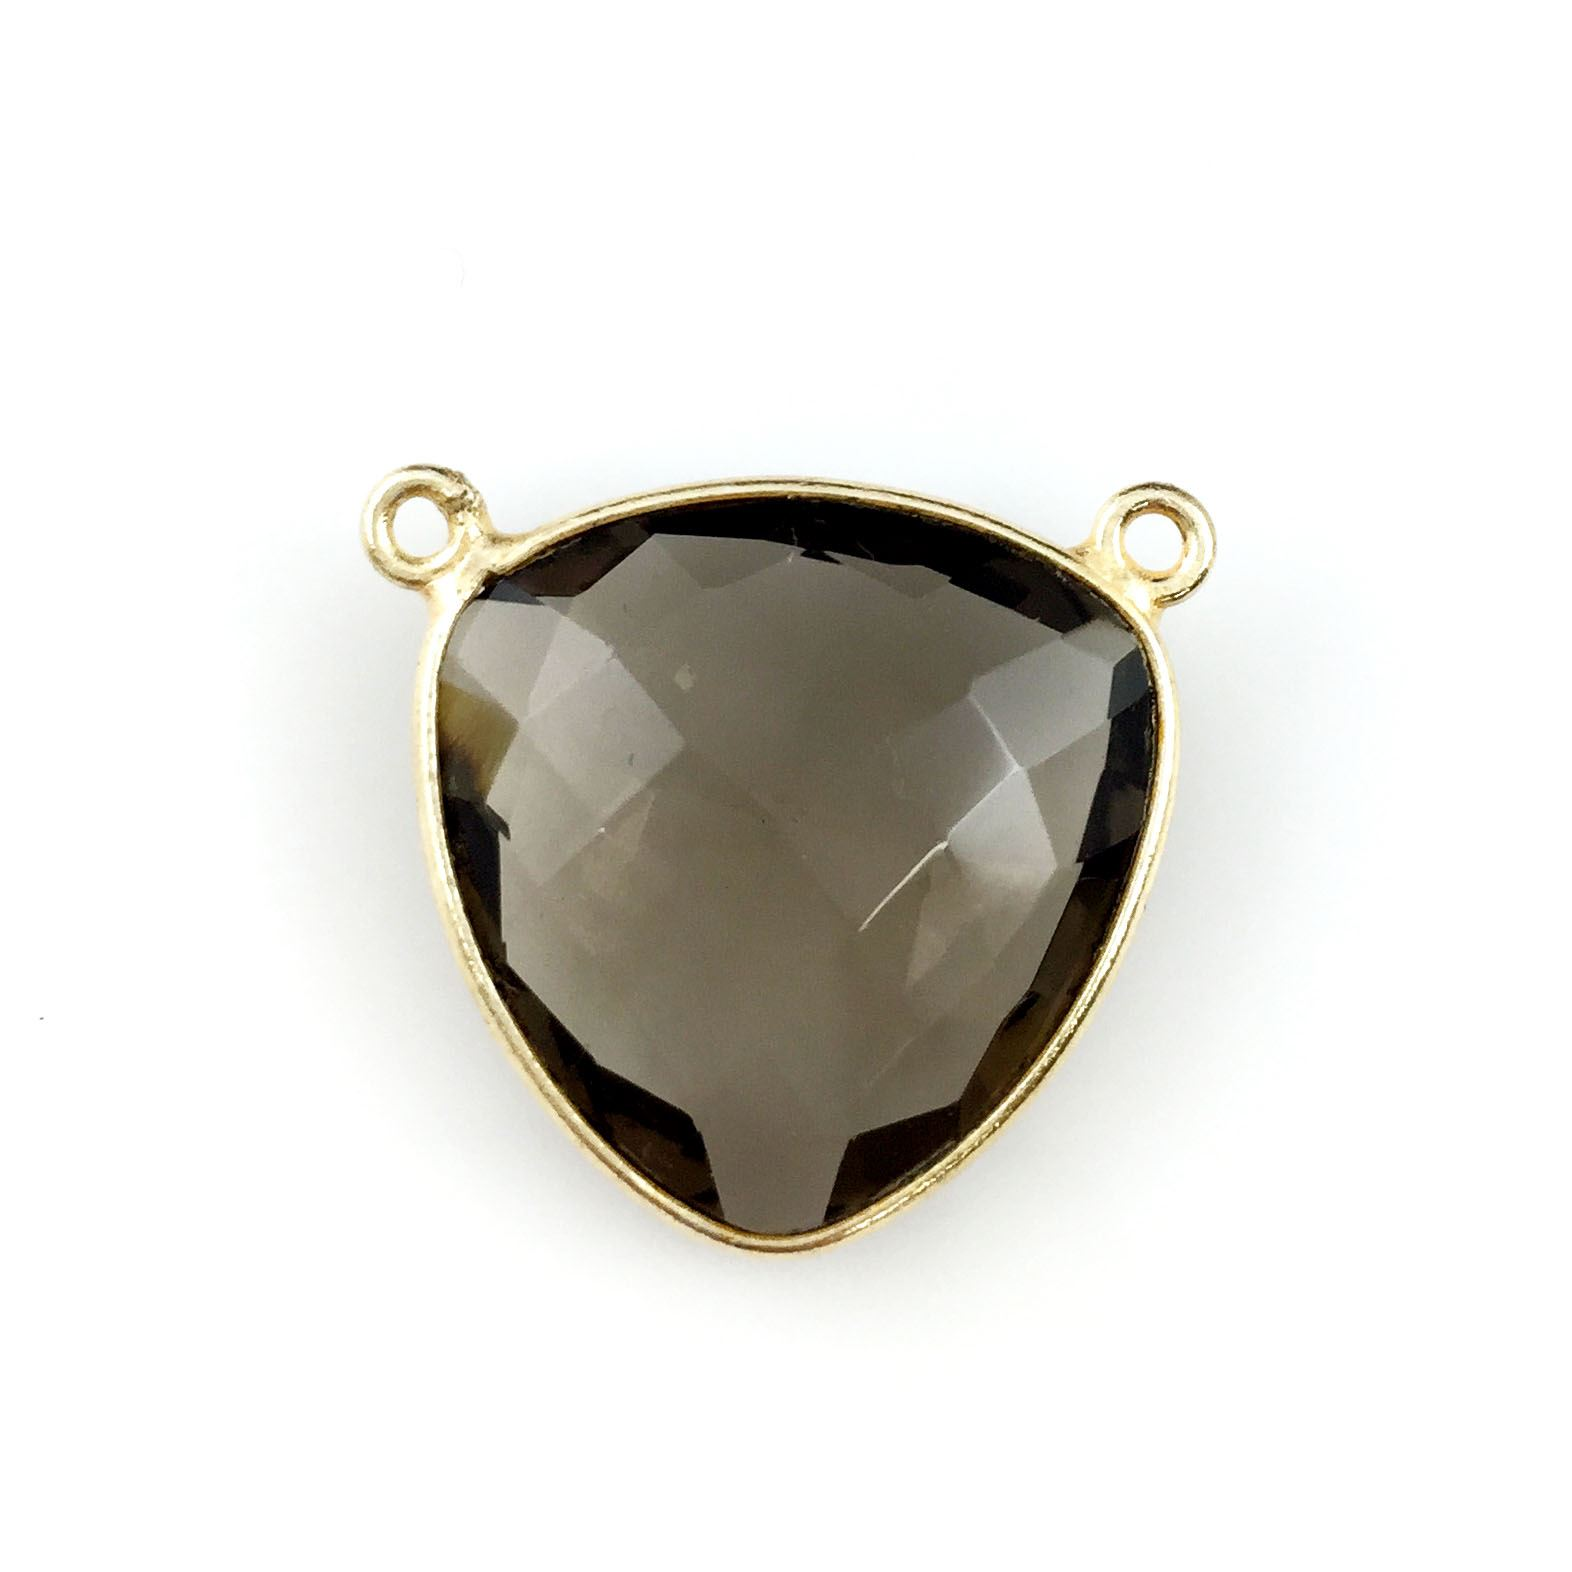 Bezel Gemstone Connector Pendant - Smokey Quartz - Gold plated Sterling Silver - Large Trillion Shaped Faceted - 18 mm - 1 piece